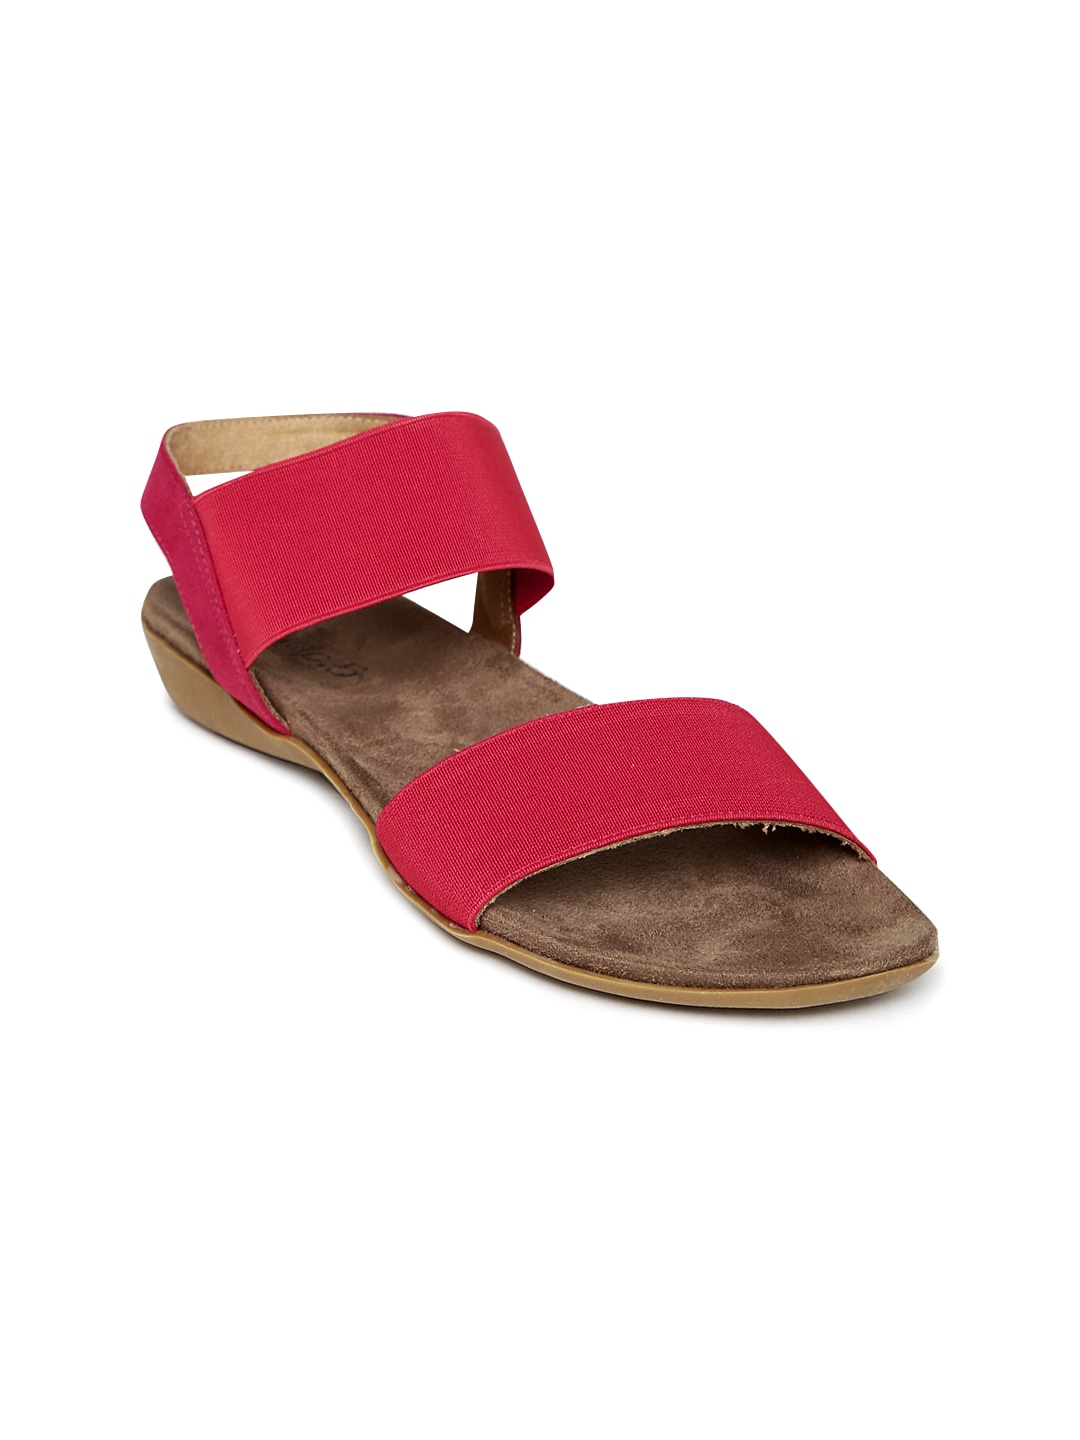 Red Solid Synthetic Open-Toed Flats